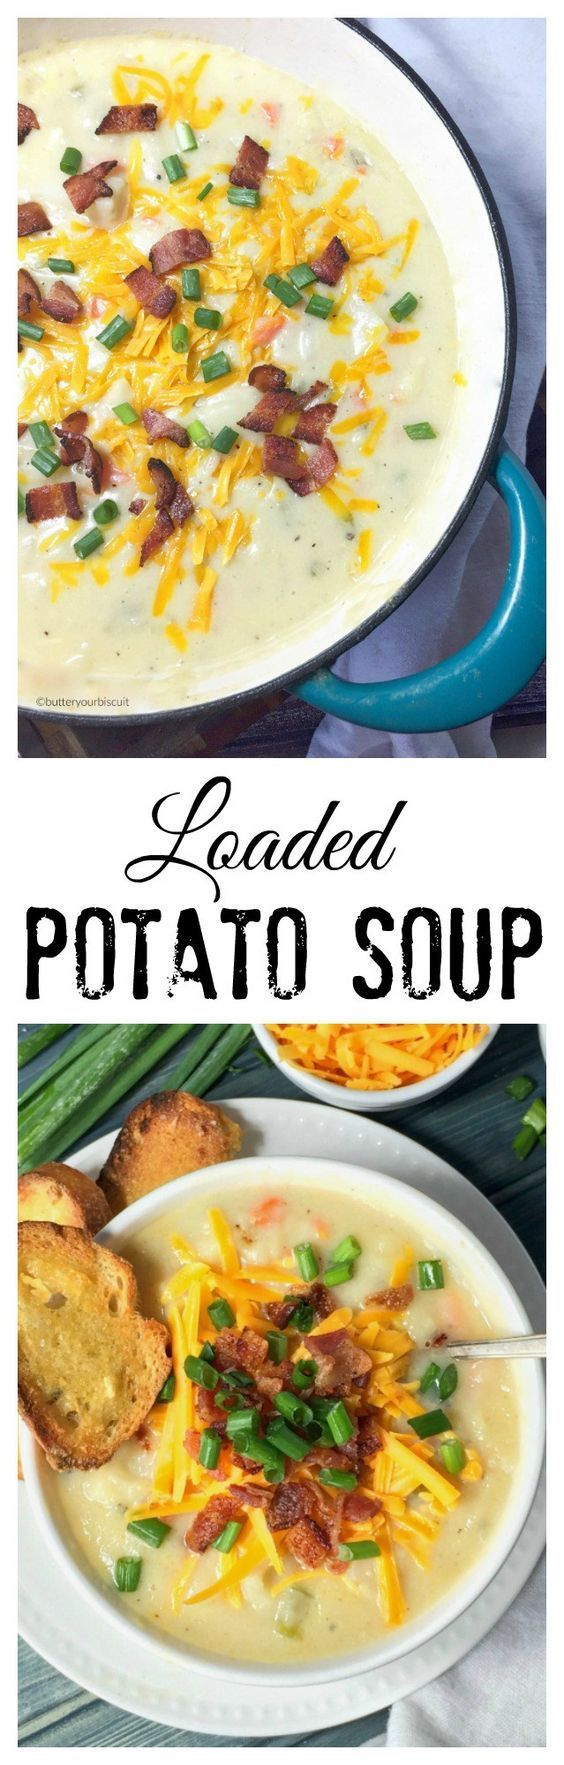 This loaded potato soup recipe is thick and creamy and full of flavor.